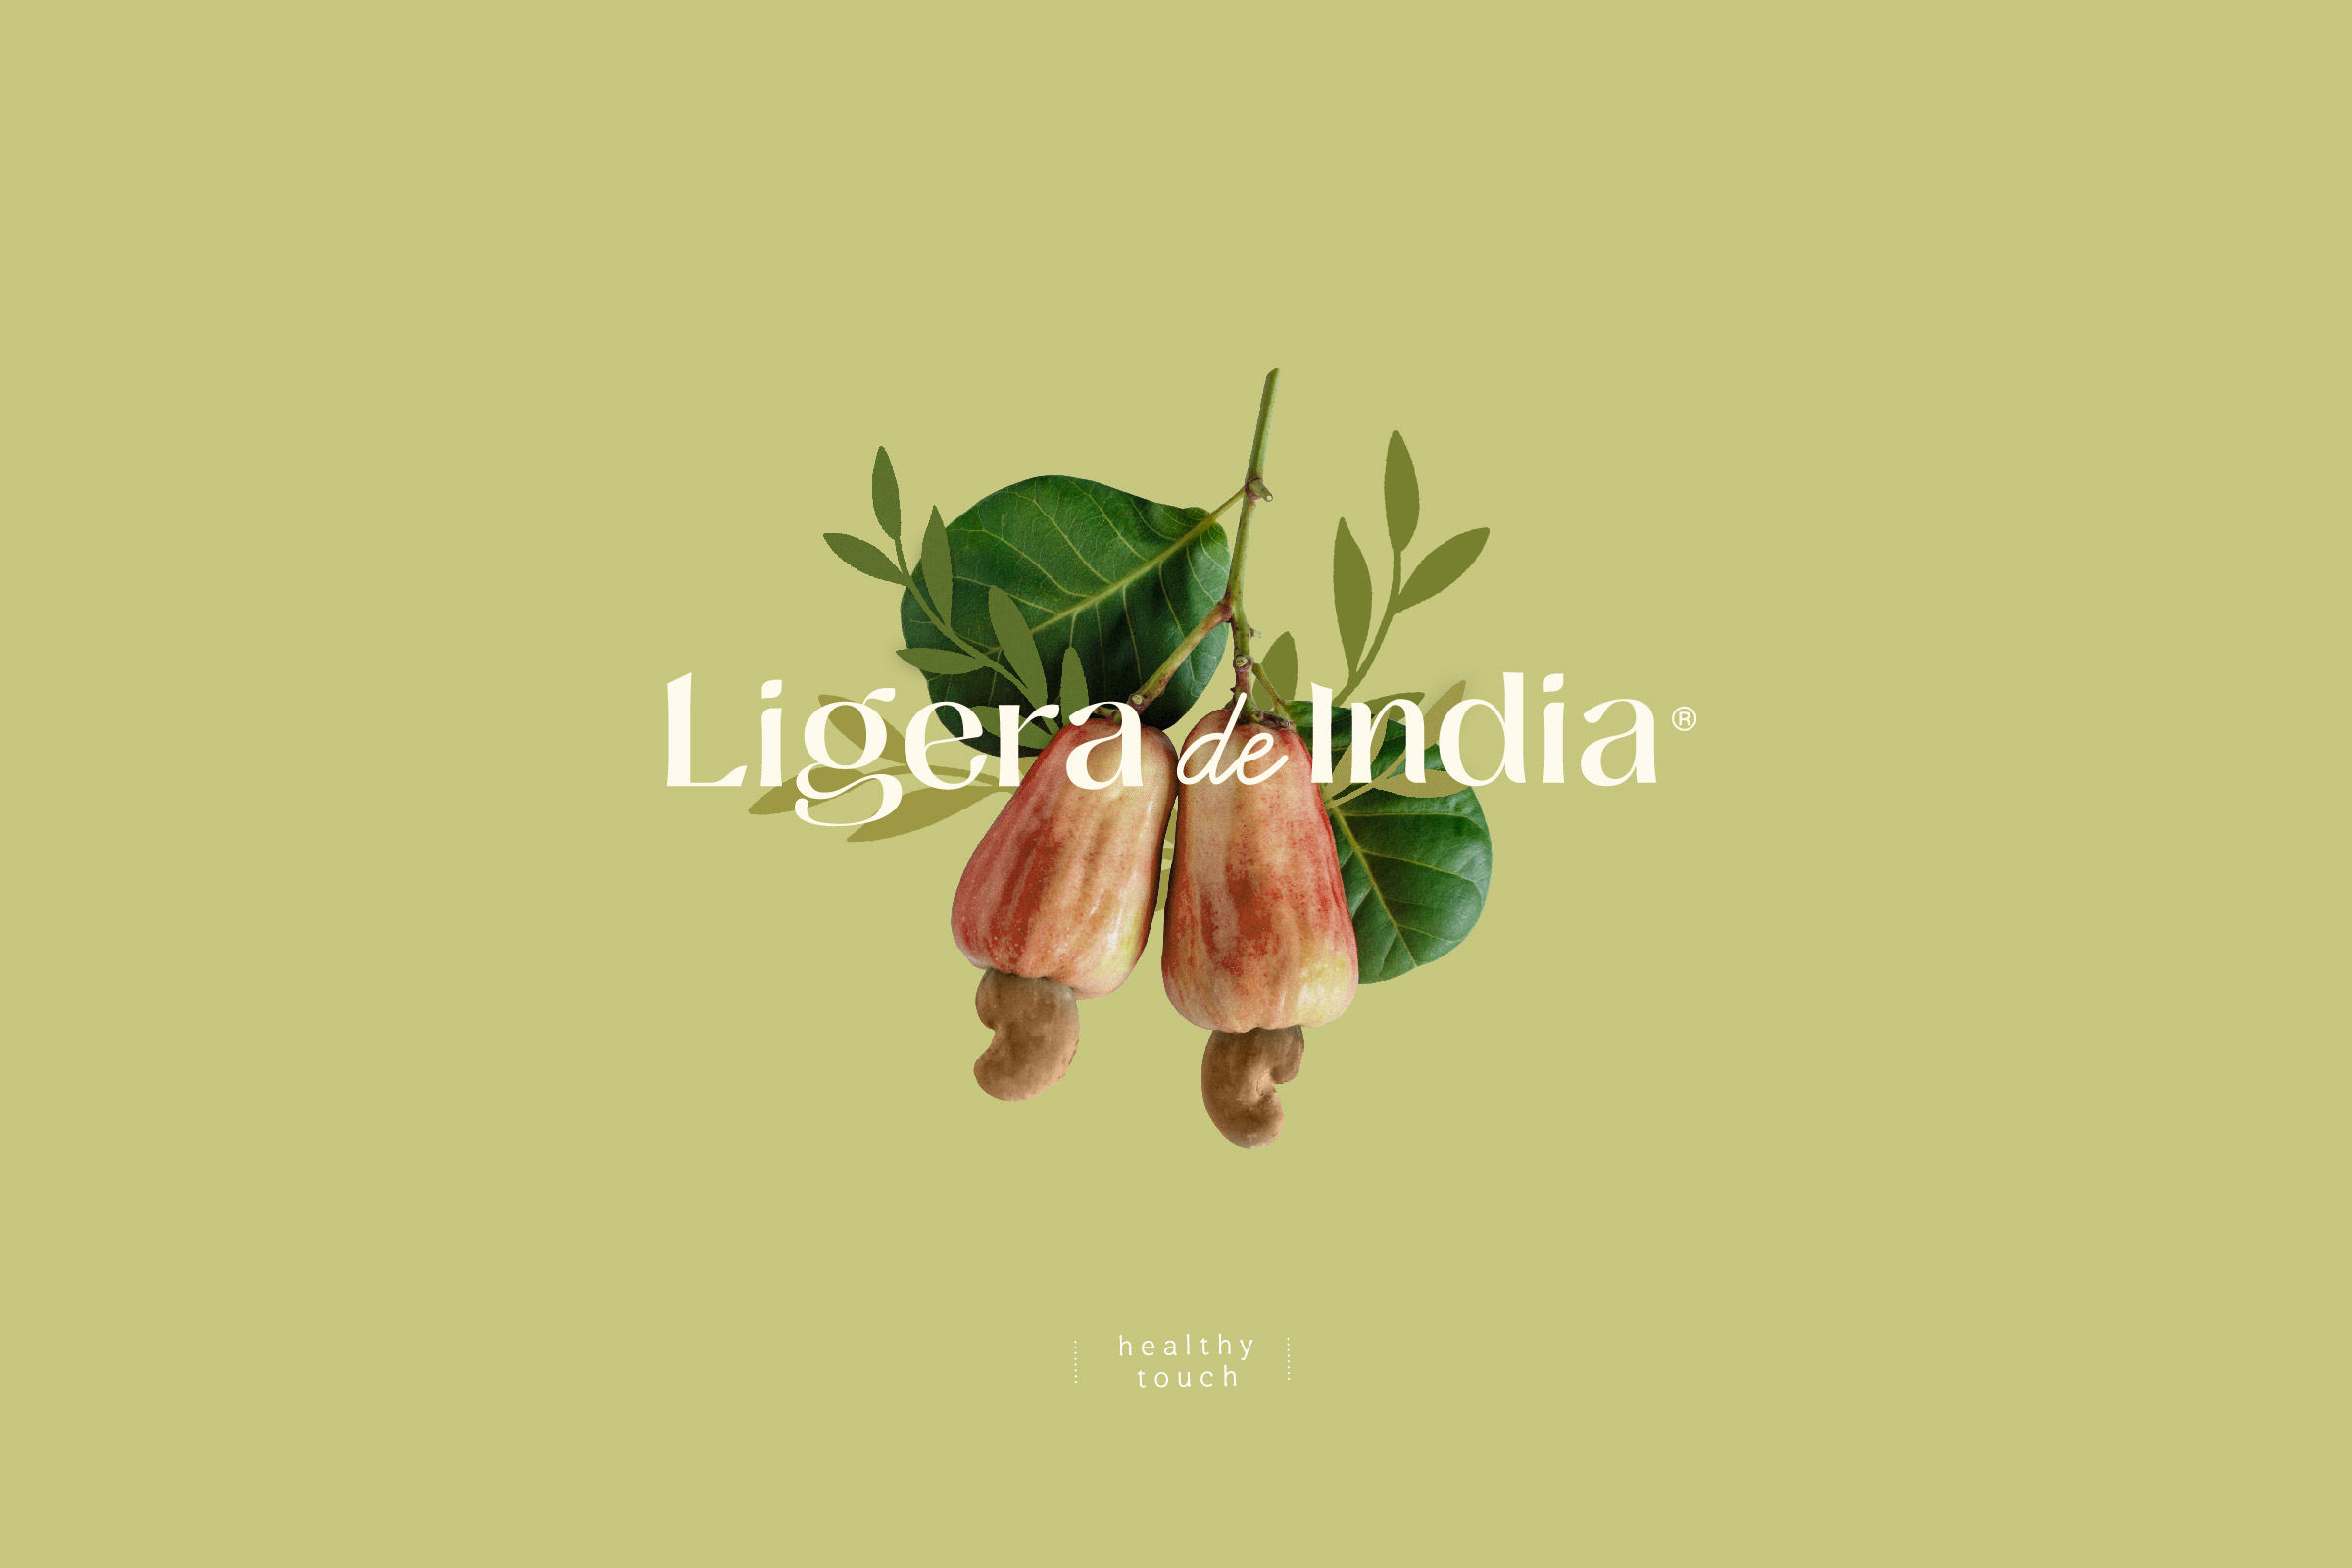 Mantra Helps Ligera de India Put Nature and Design in One Place